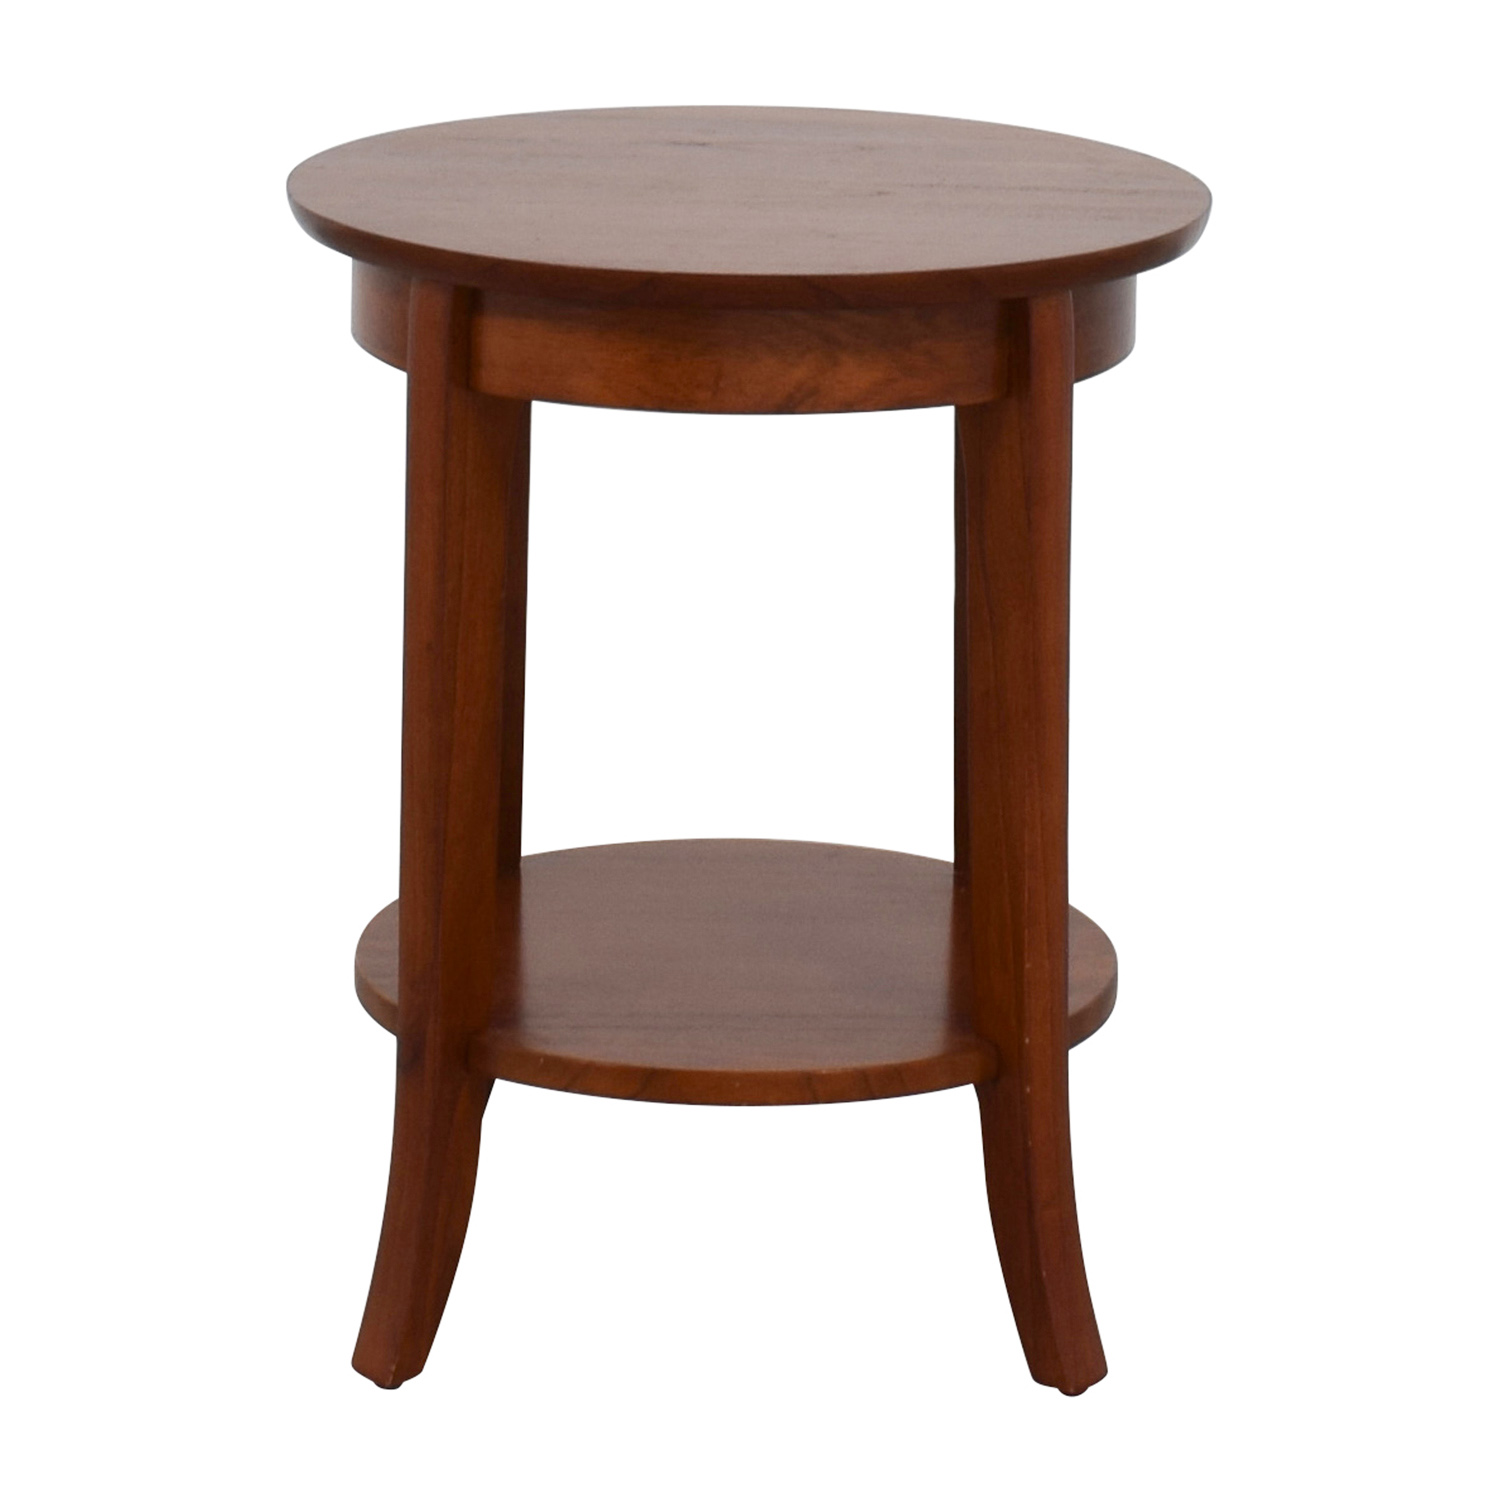 Pottery Barn Pottery Barn Chloe Side Table on sale